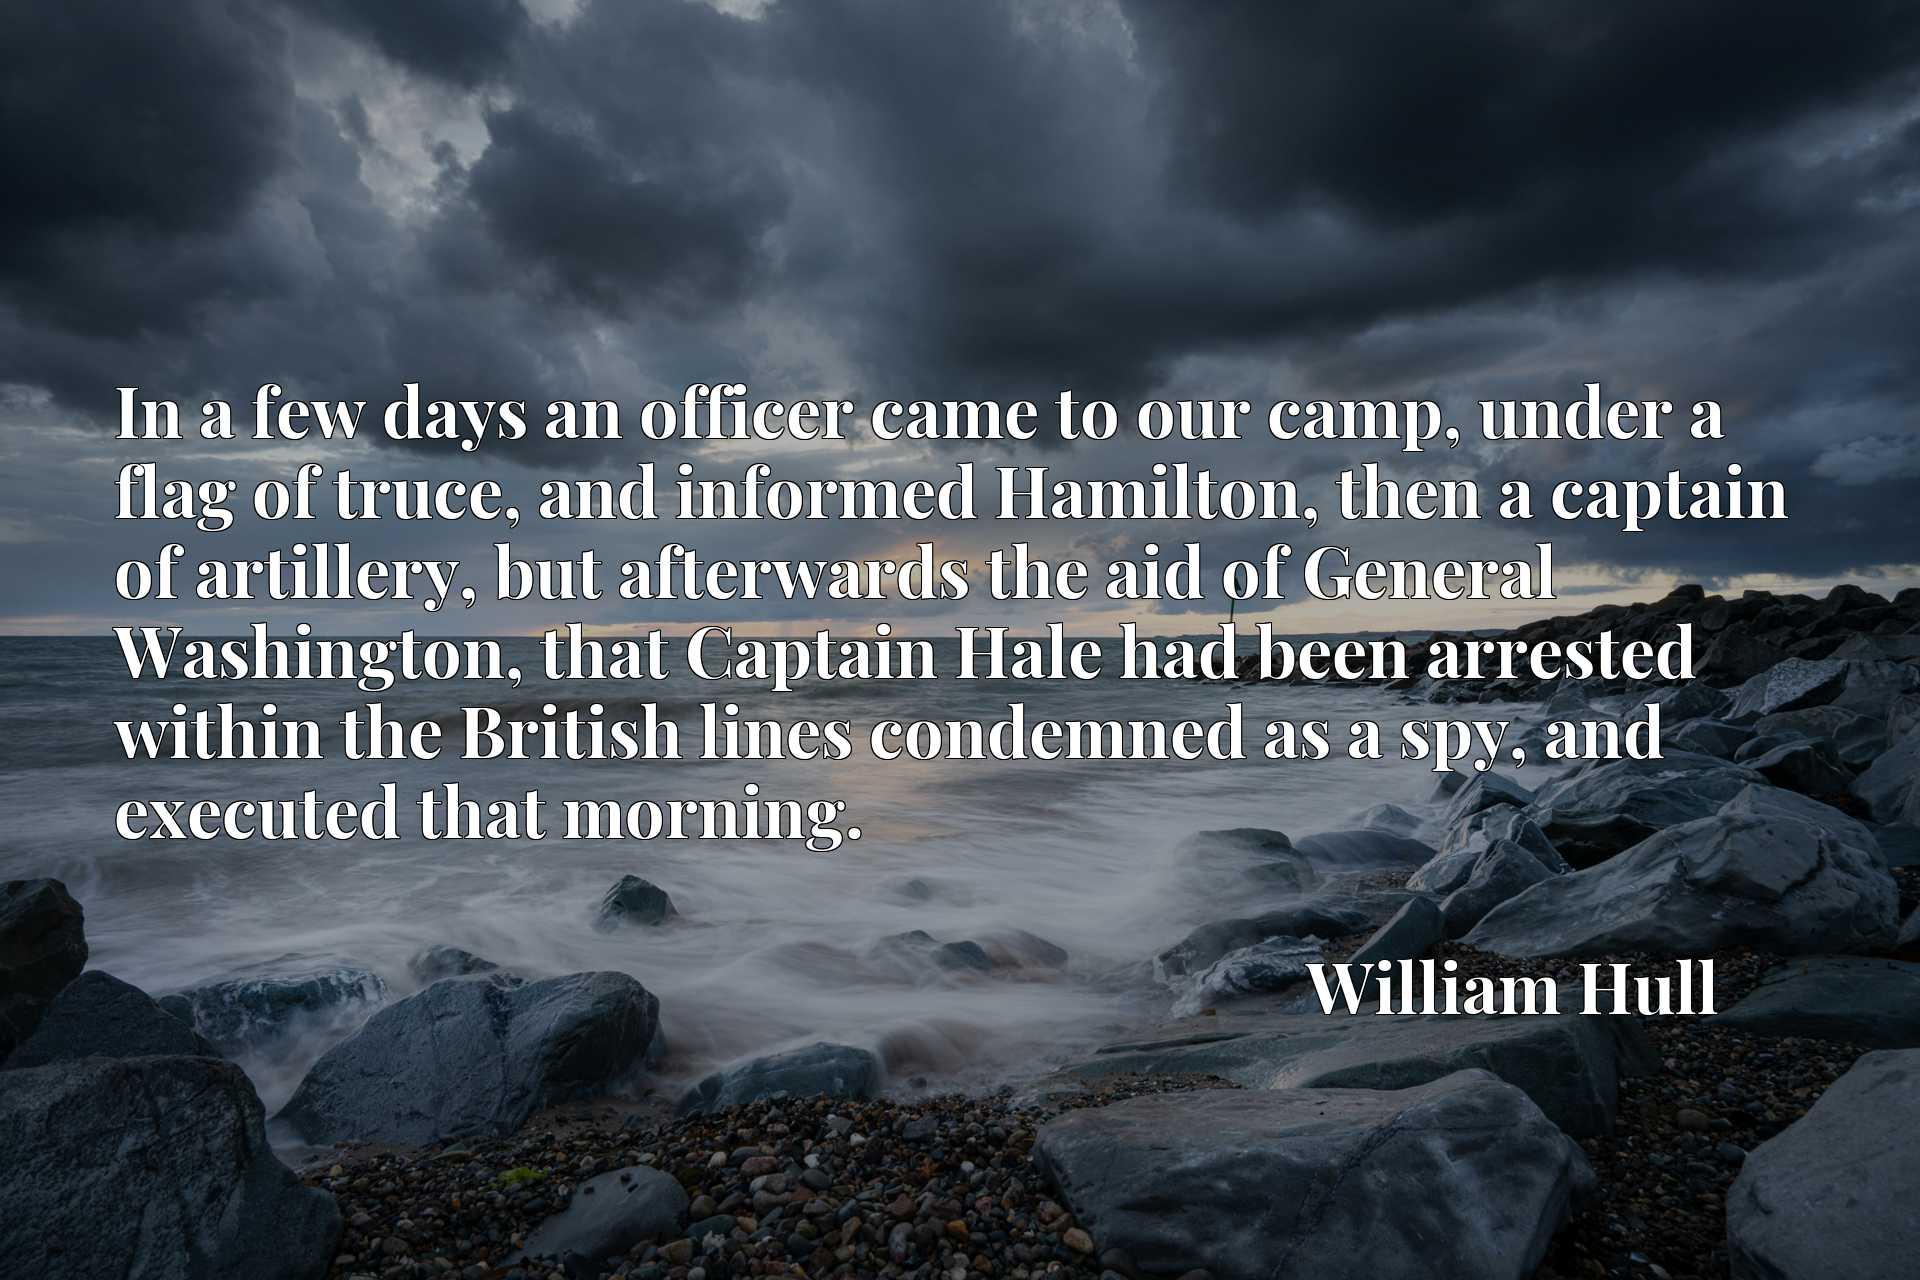 In a few days an officer came to our camp, under a flag of truce, and informed Hamilton, then a captain of artillery, but afterwards the aid of General Washington, that Captain Hale had been arrested within the British lines condemned as a spy, and executed that morning.